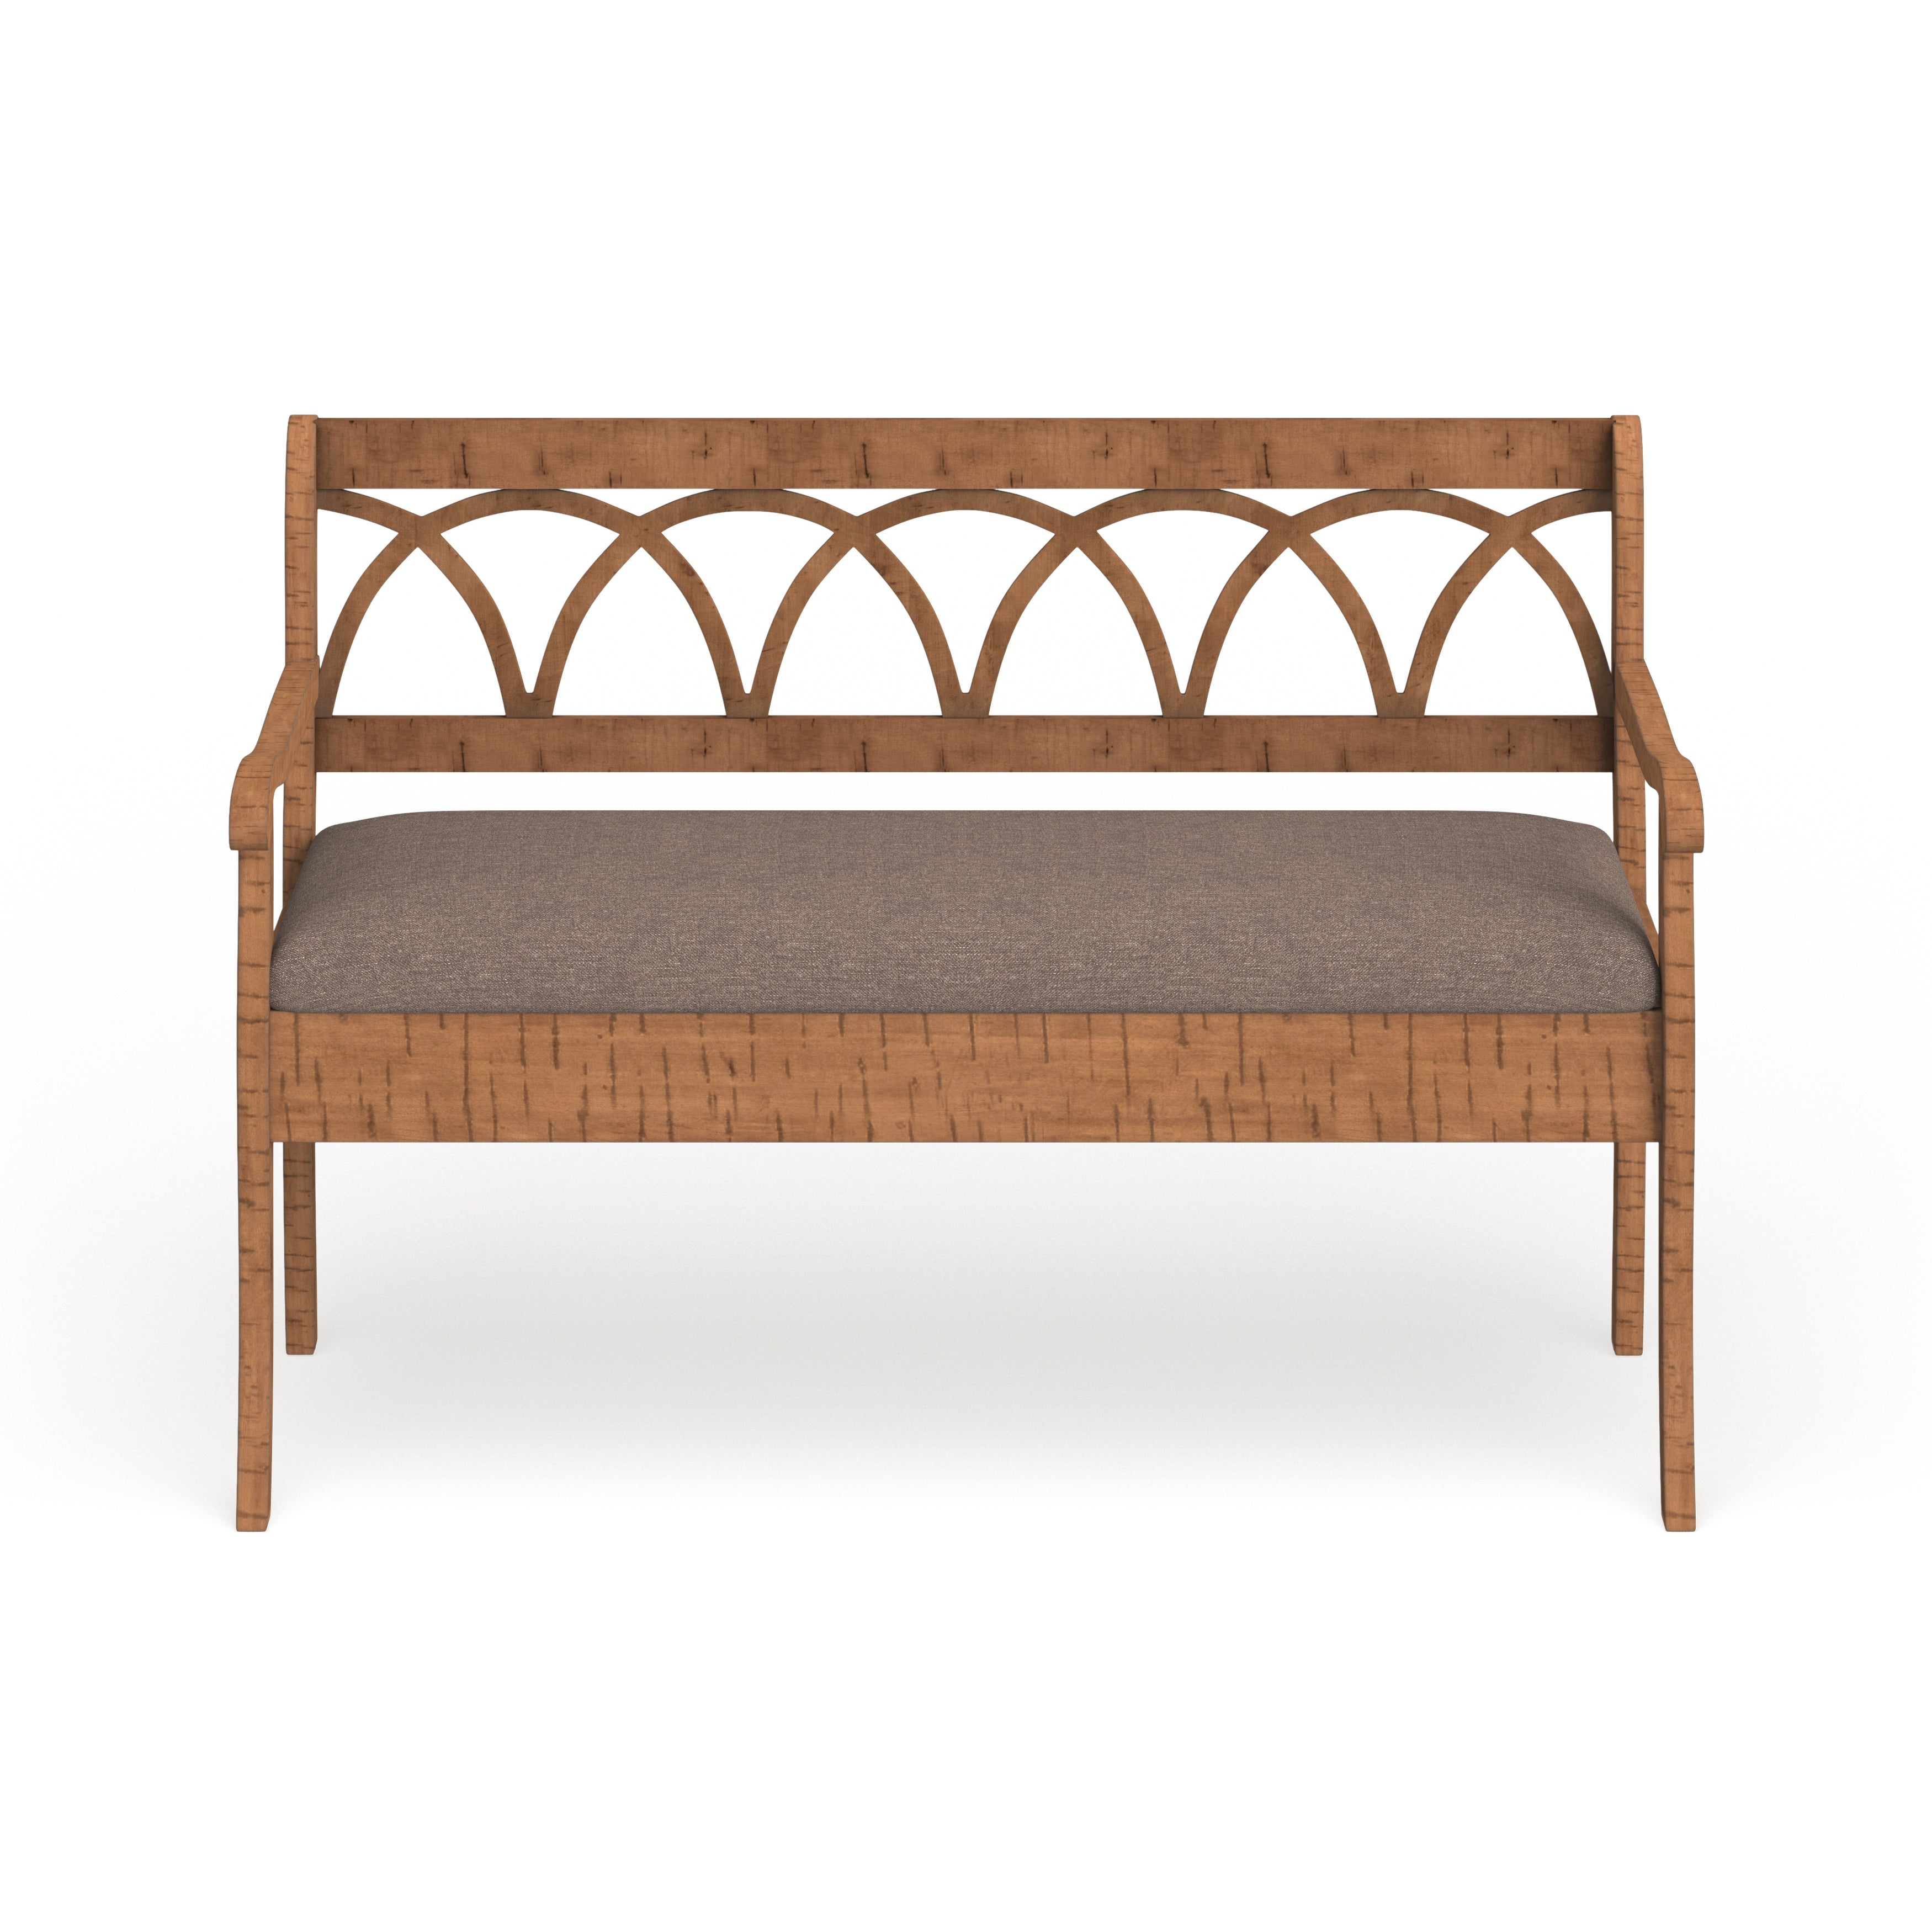 Shop Black Friday Deals On Copper Grove Watchorn Storage Bench With Seat Cushion Overstock 20470361